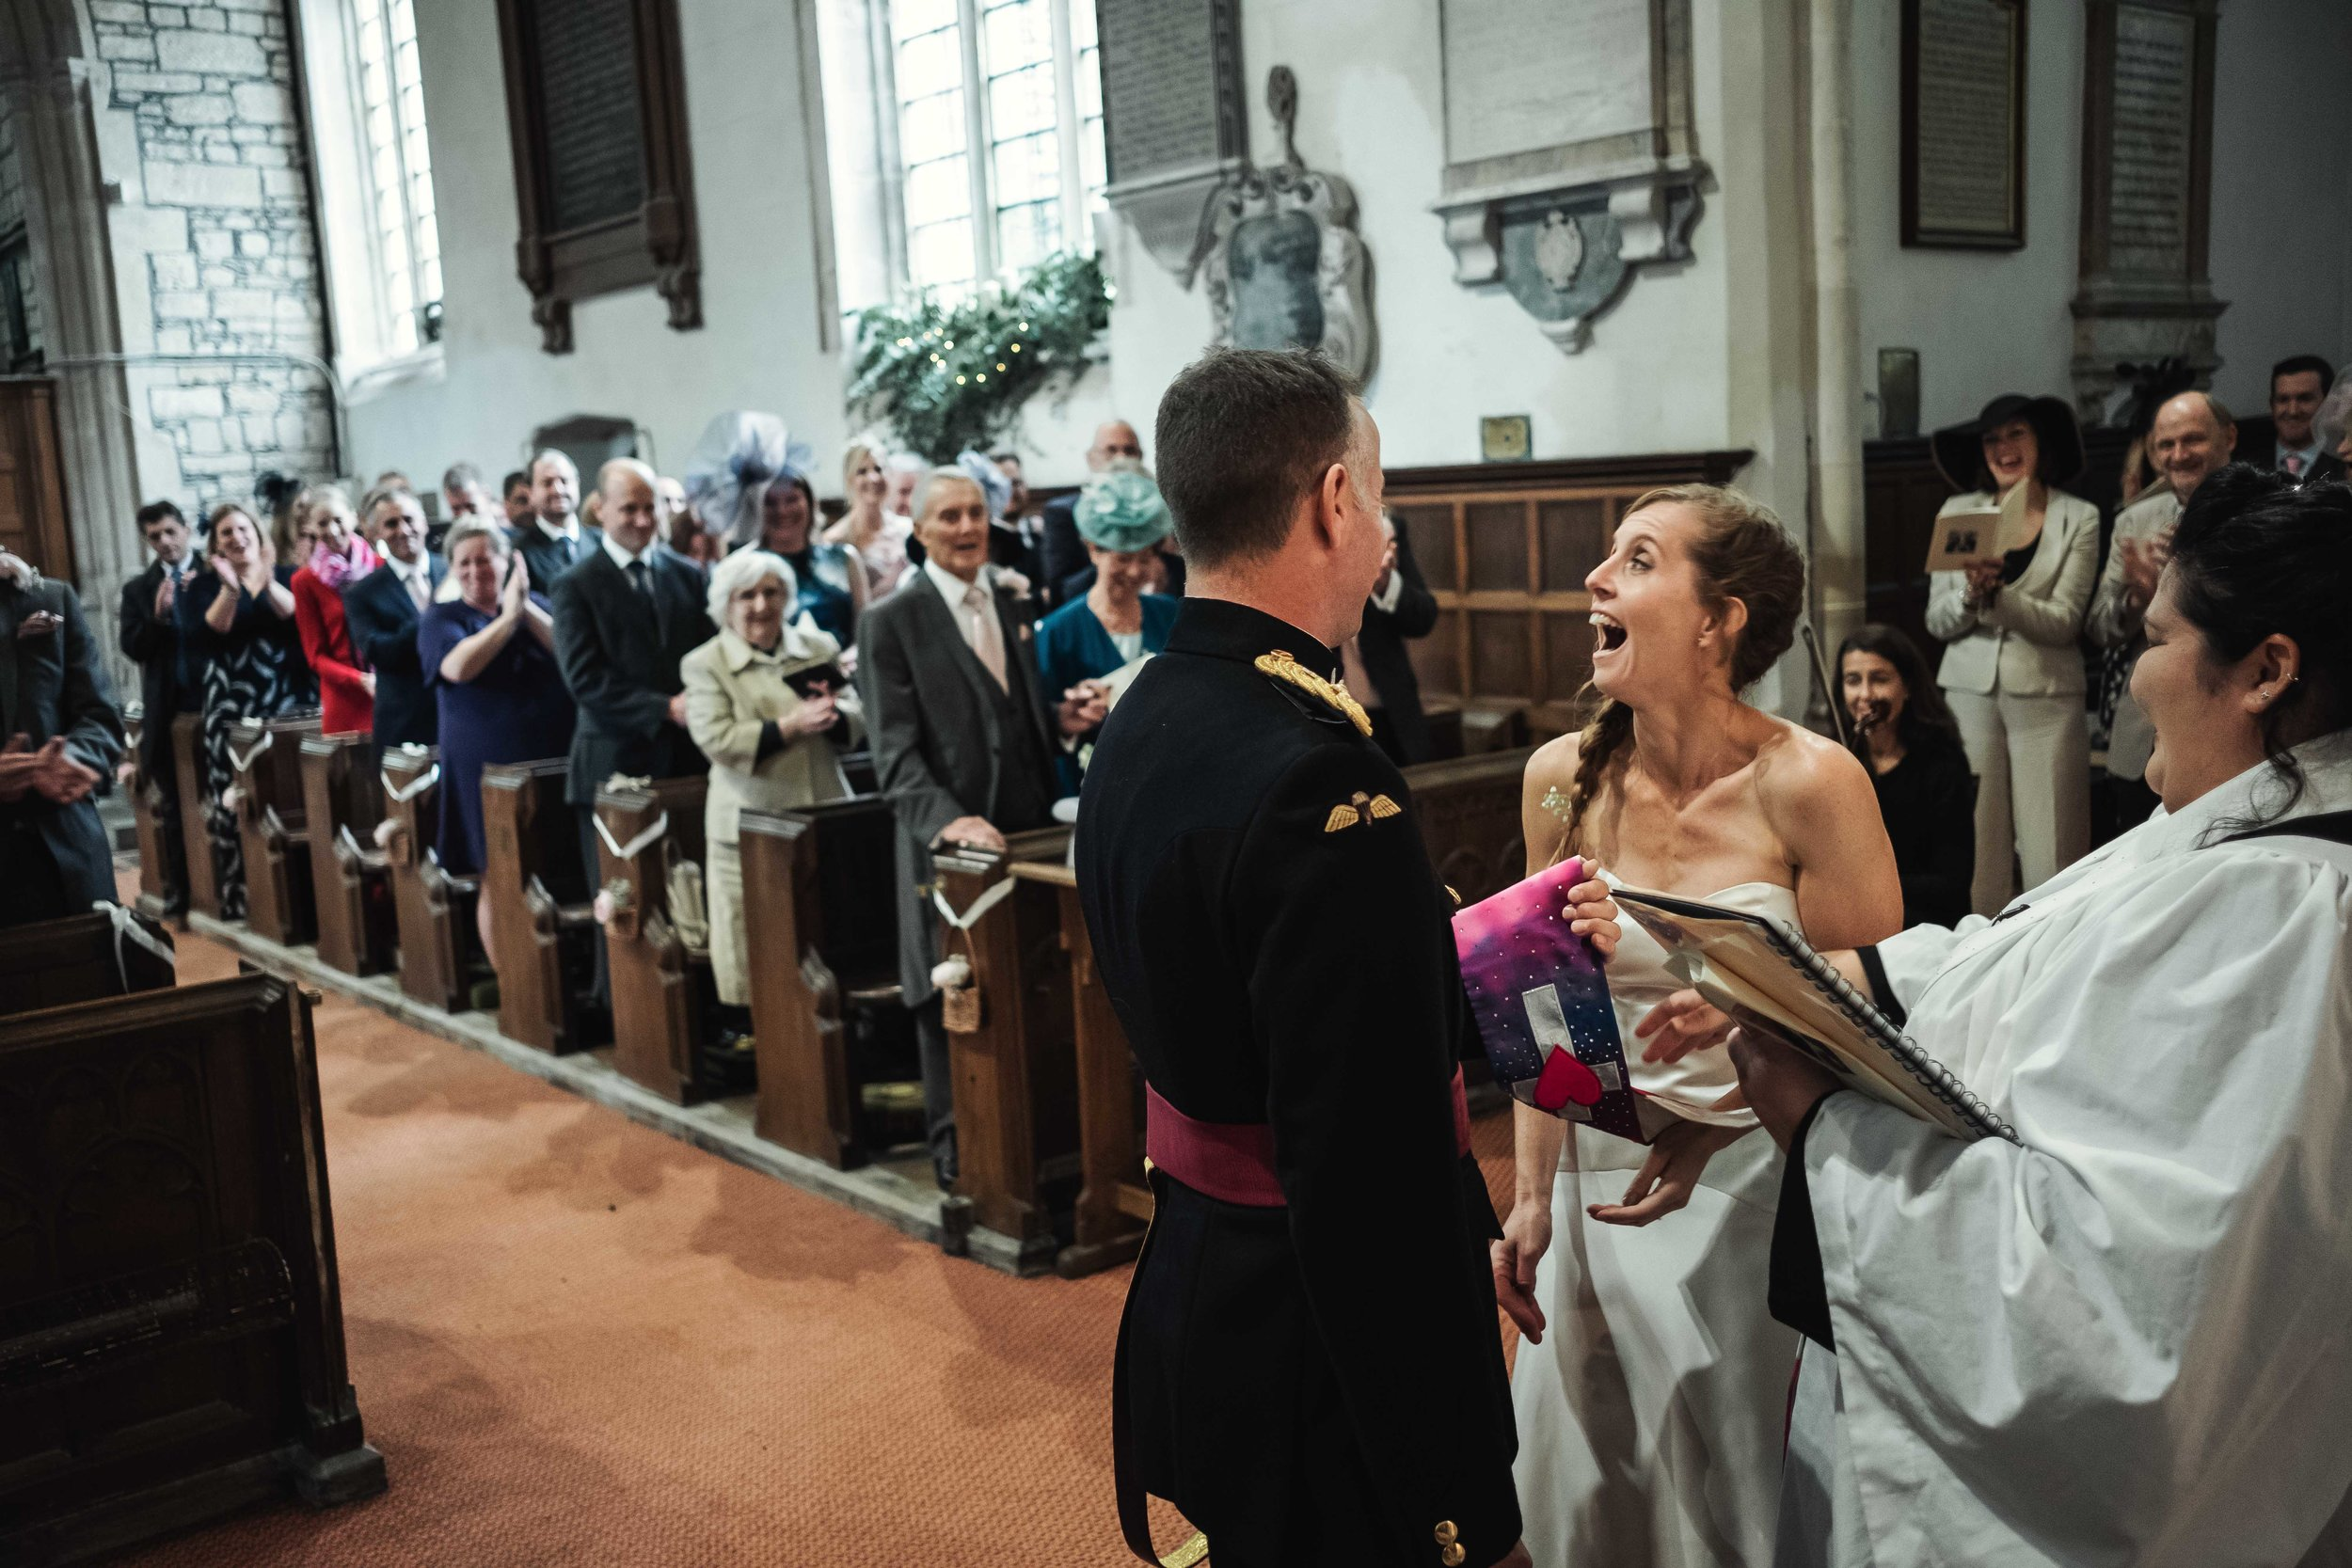 Salisbury wedding photography (47 of 250).jpg